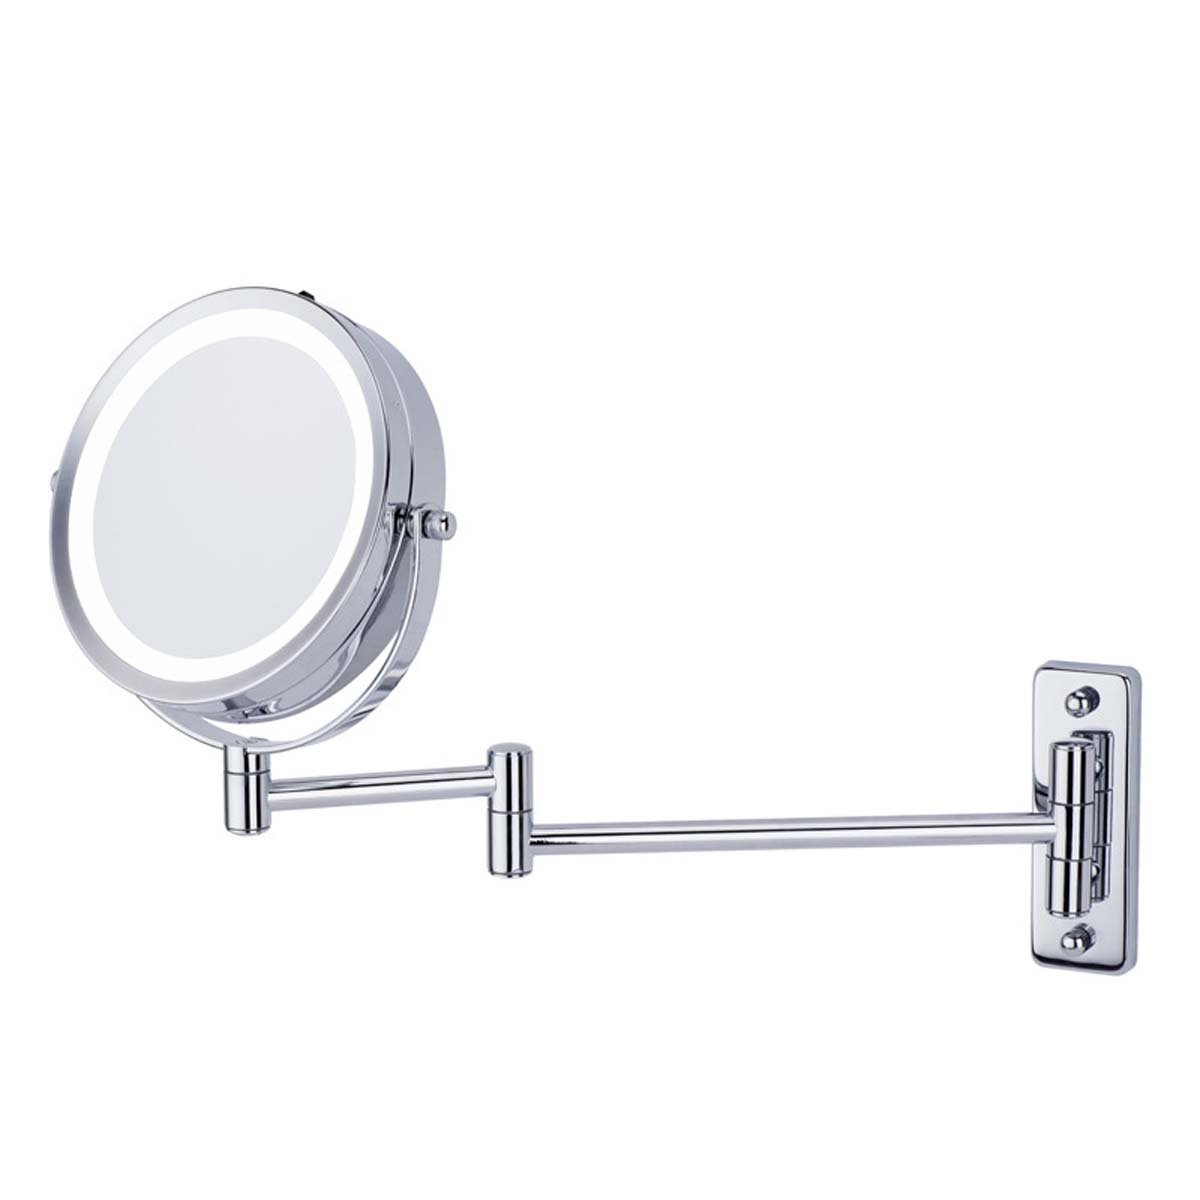 J&A Double Sided LED Wall Mount Folding Mirror, Wall Mirror, 6in Bathroom Shaving, Makeup Mirror, 1x & 5x Zoom Collapsible Makeup Mirror, Metal Bracket, Rustproof Base